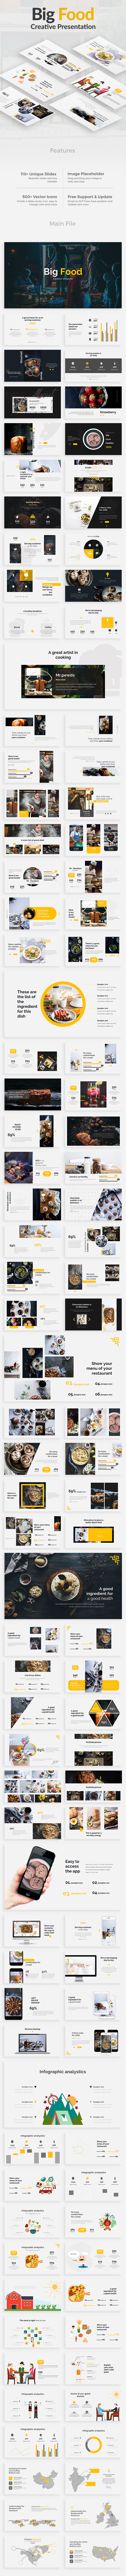 Big Food Creative Powerpoint Template - Creative PowerPoint Templates